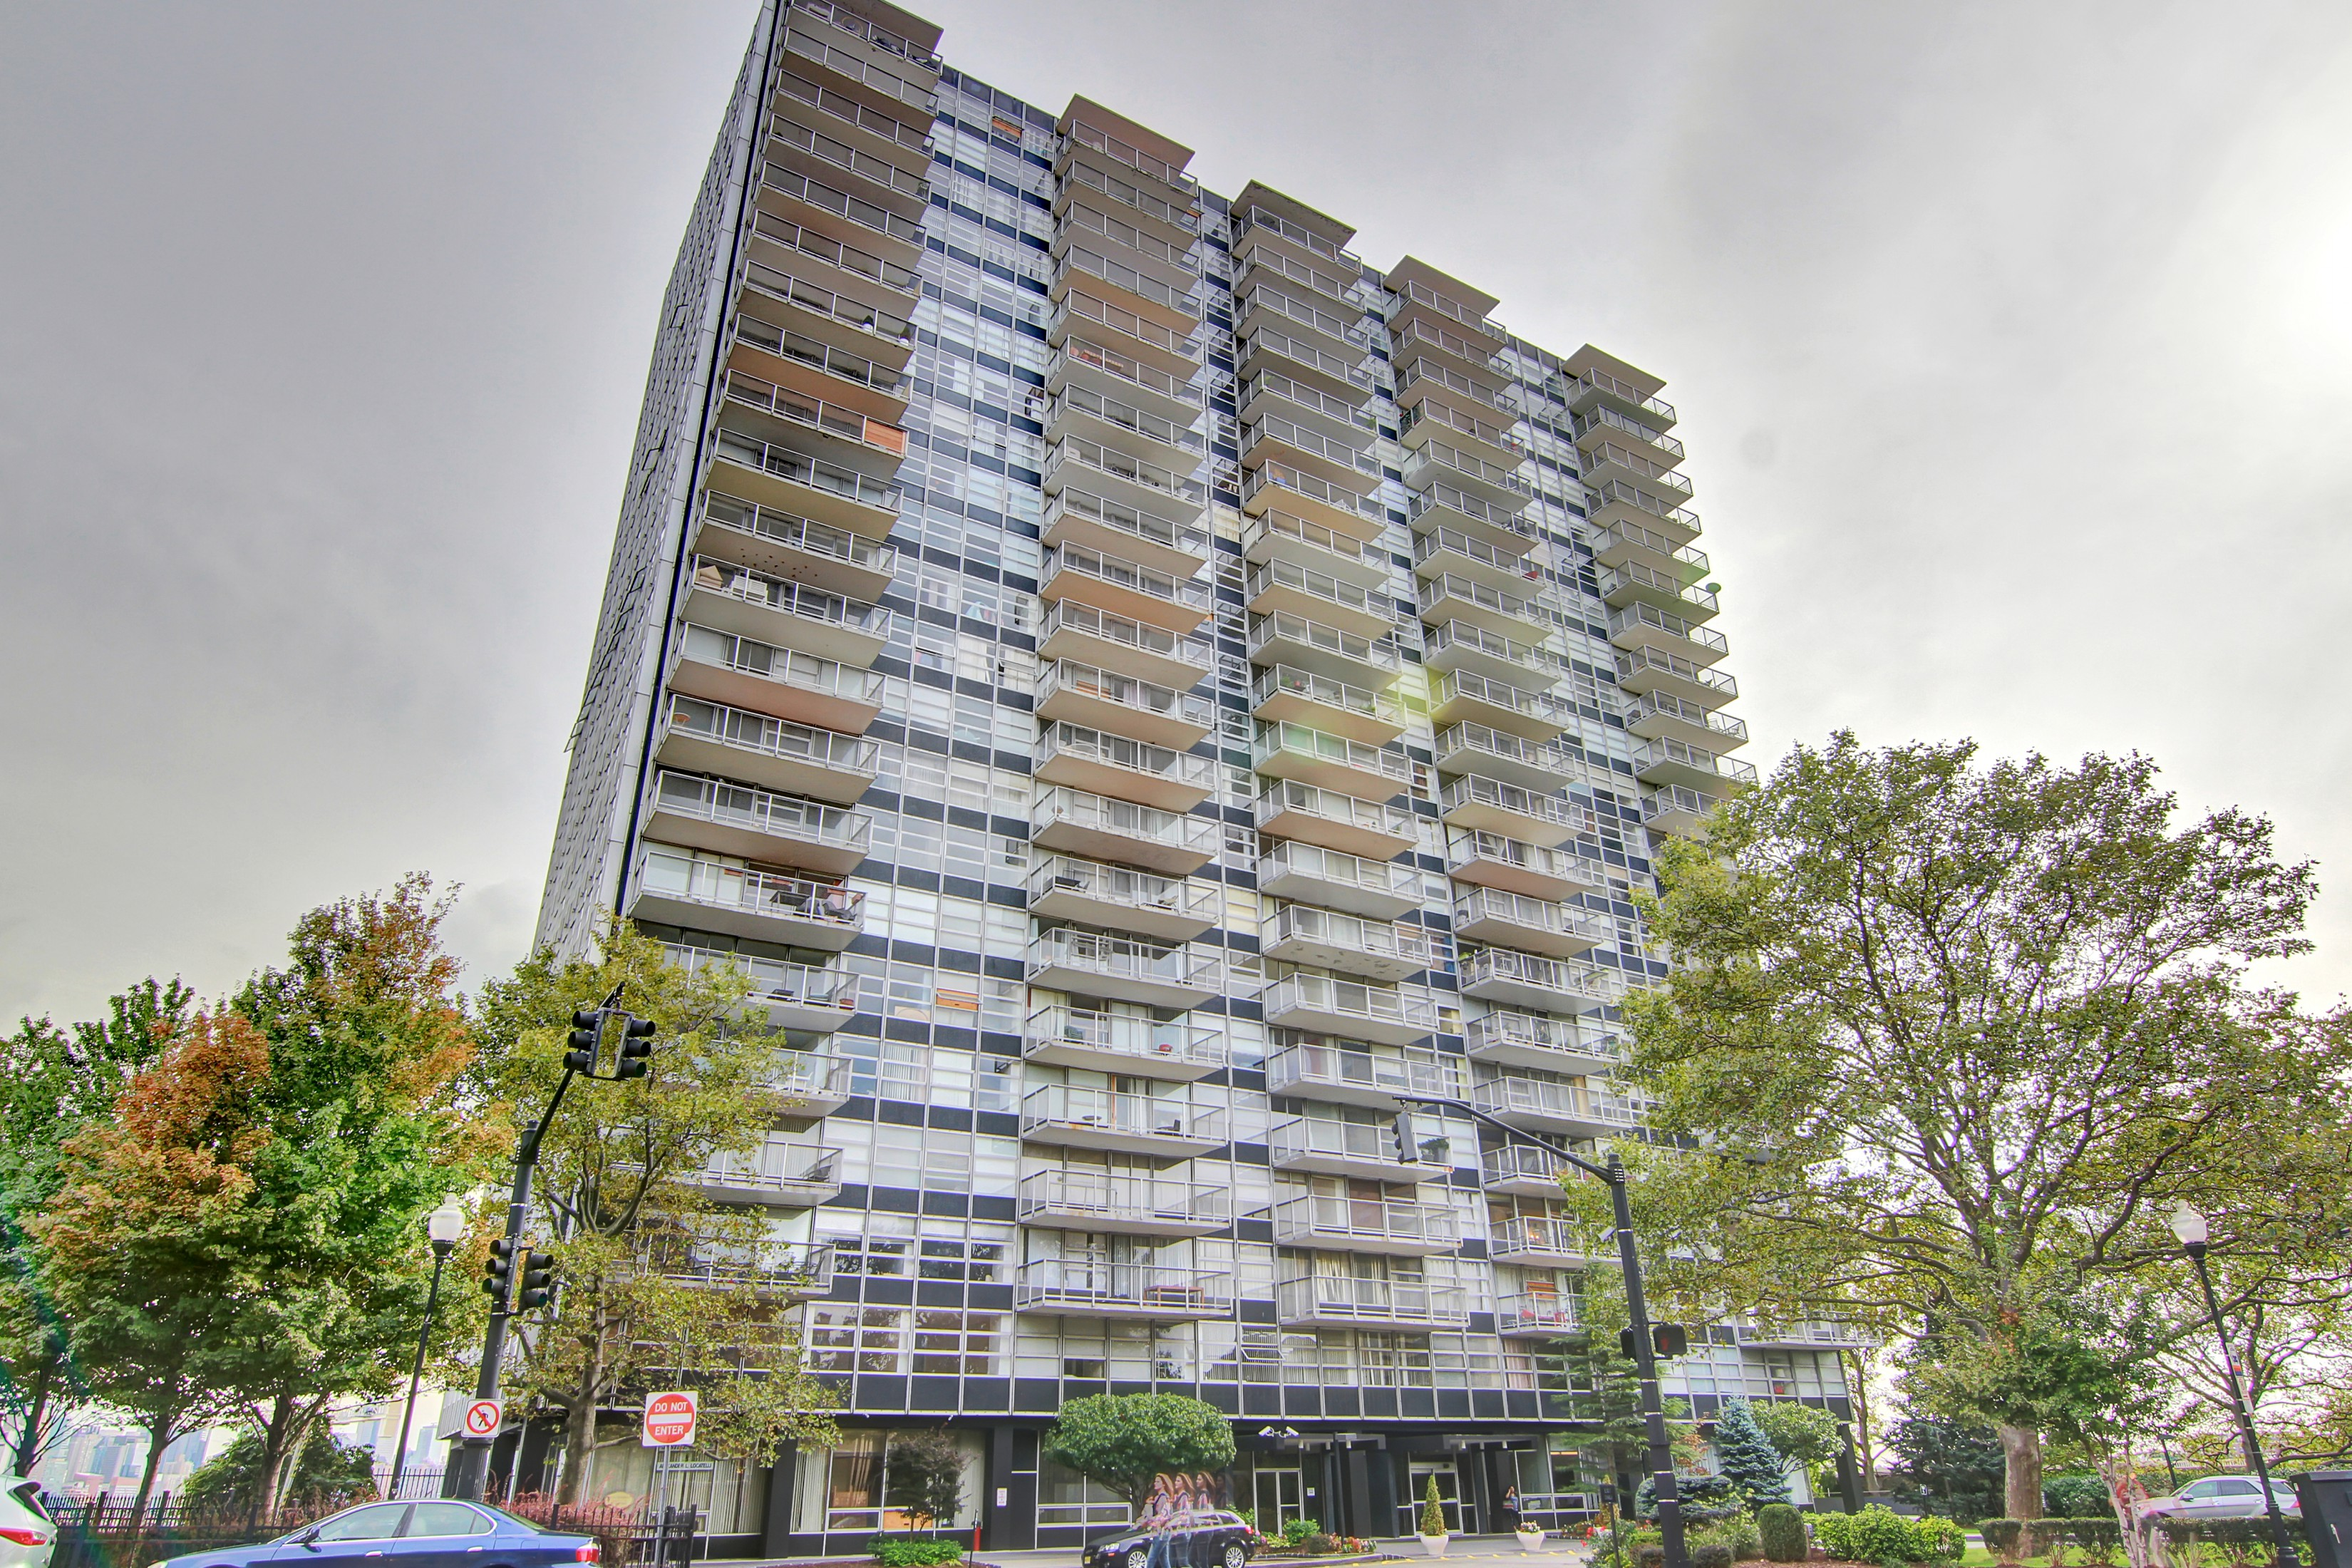 Condominium for Sale at Tower West 6050 Blvd East 3G West New York, New Jersey 07093 United States